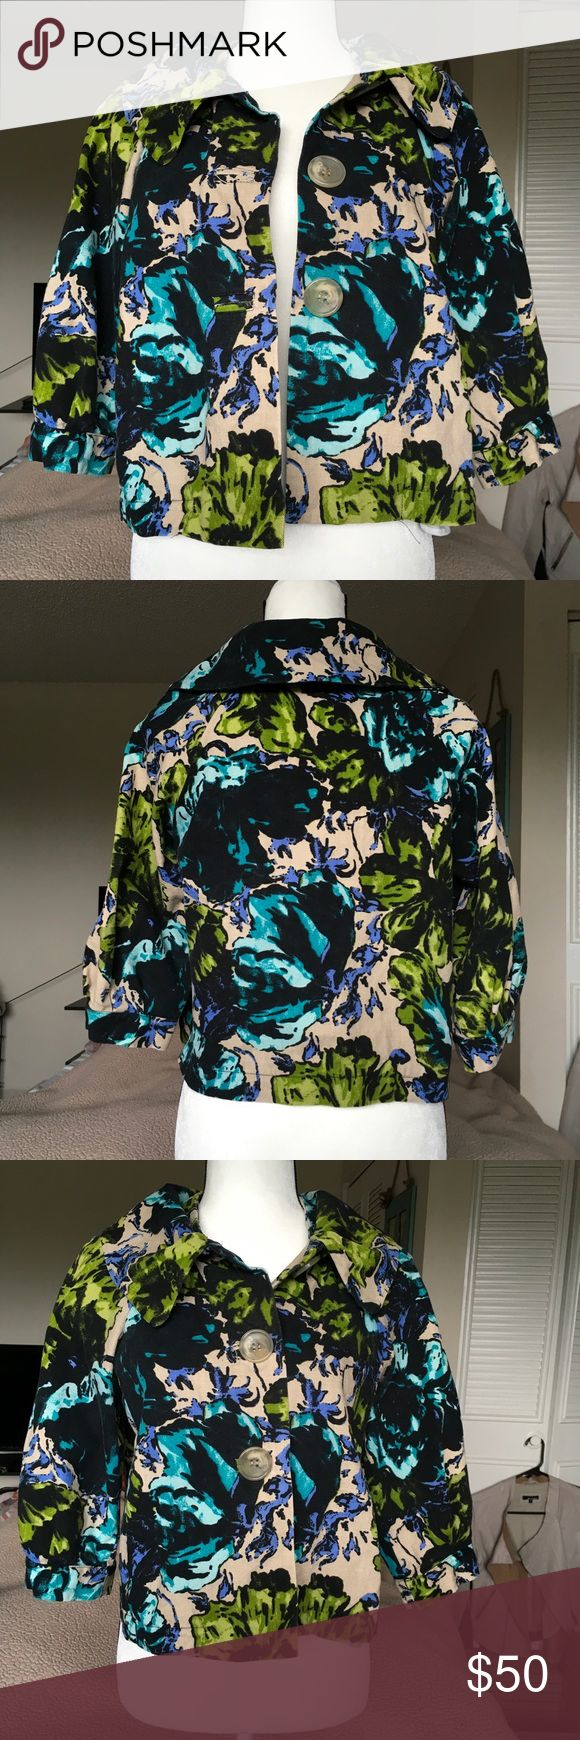 Bolero Jacket Bolero jacket in excellent used condition. Made in Italy by Katia G. (Italian clothing brand). Size is Italian 42 or US 6-8. Open to trades and offers. Tagged as Marc Jacobs for exposure. Marc By Marc Jacobs Jackets & Coats